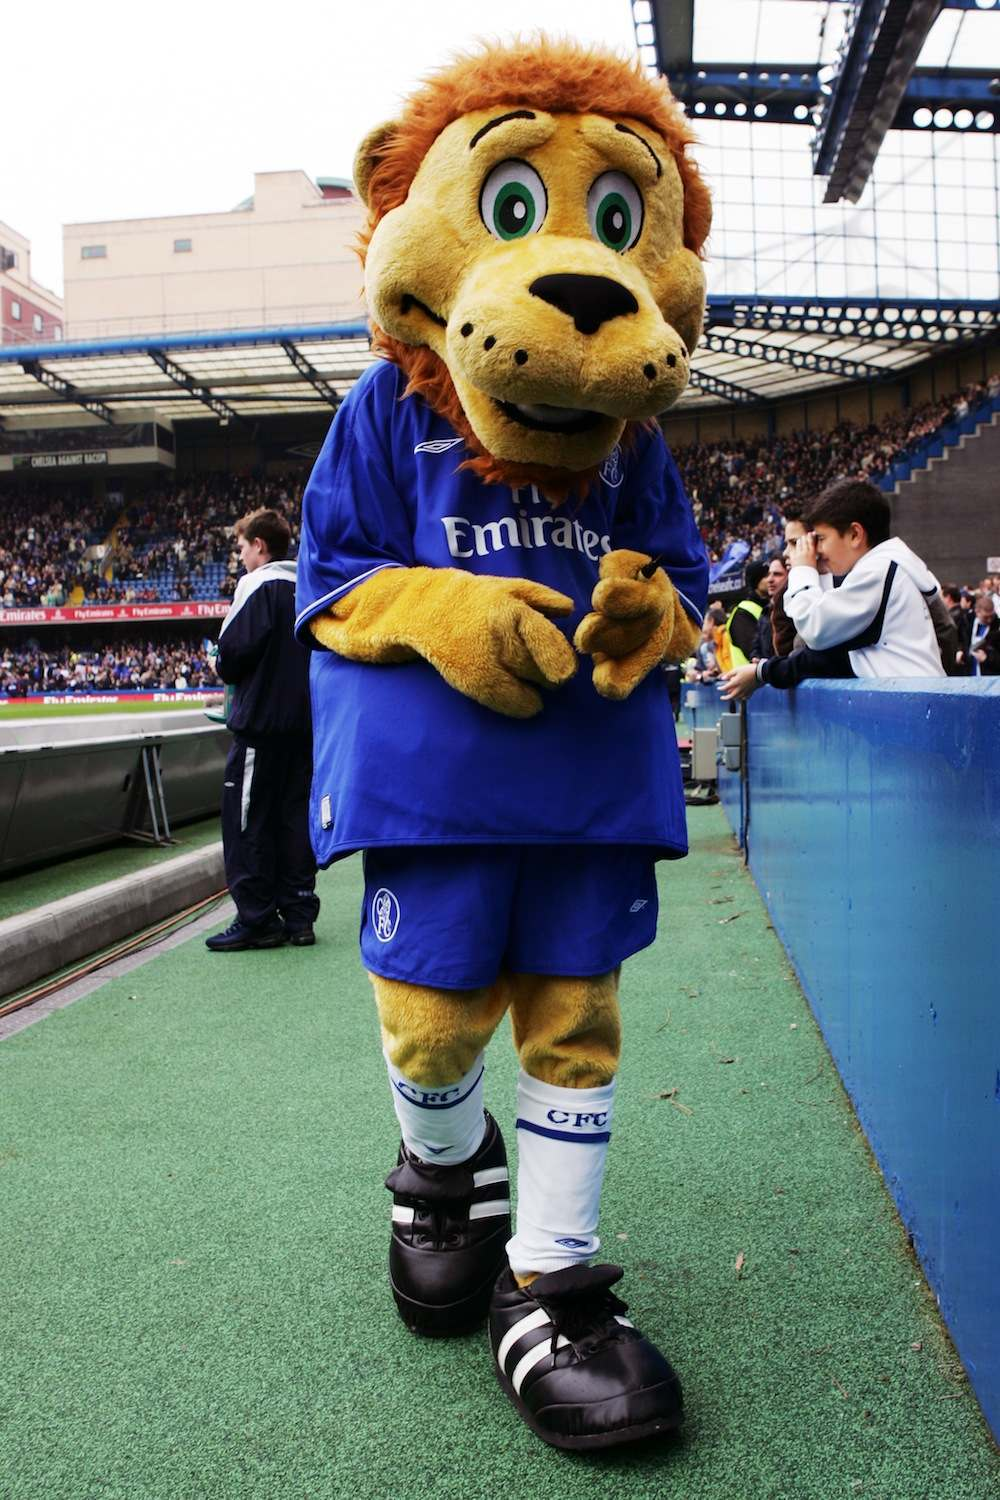 LONDON - APRIL 23:  Chelsea mascot Stamford the Lion entertains the crowd prior to the Barclays Premiership match between Chelsea and Fulham at Stamford Bridge on April 23, 2005 in London, England.  (Photo by Ben Radford/Getty Images) *** Local Caption *** Stamford the Lion